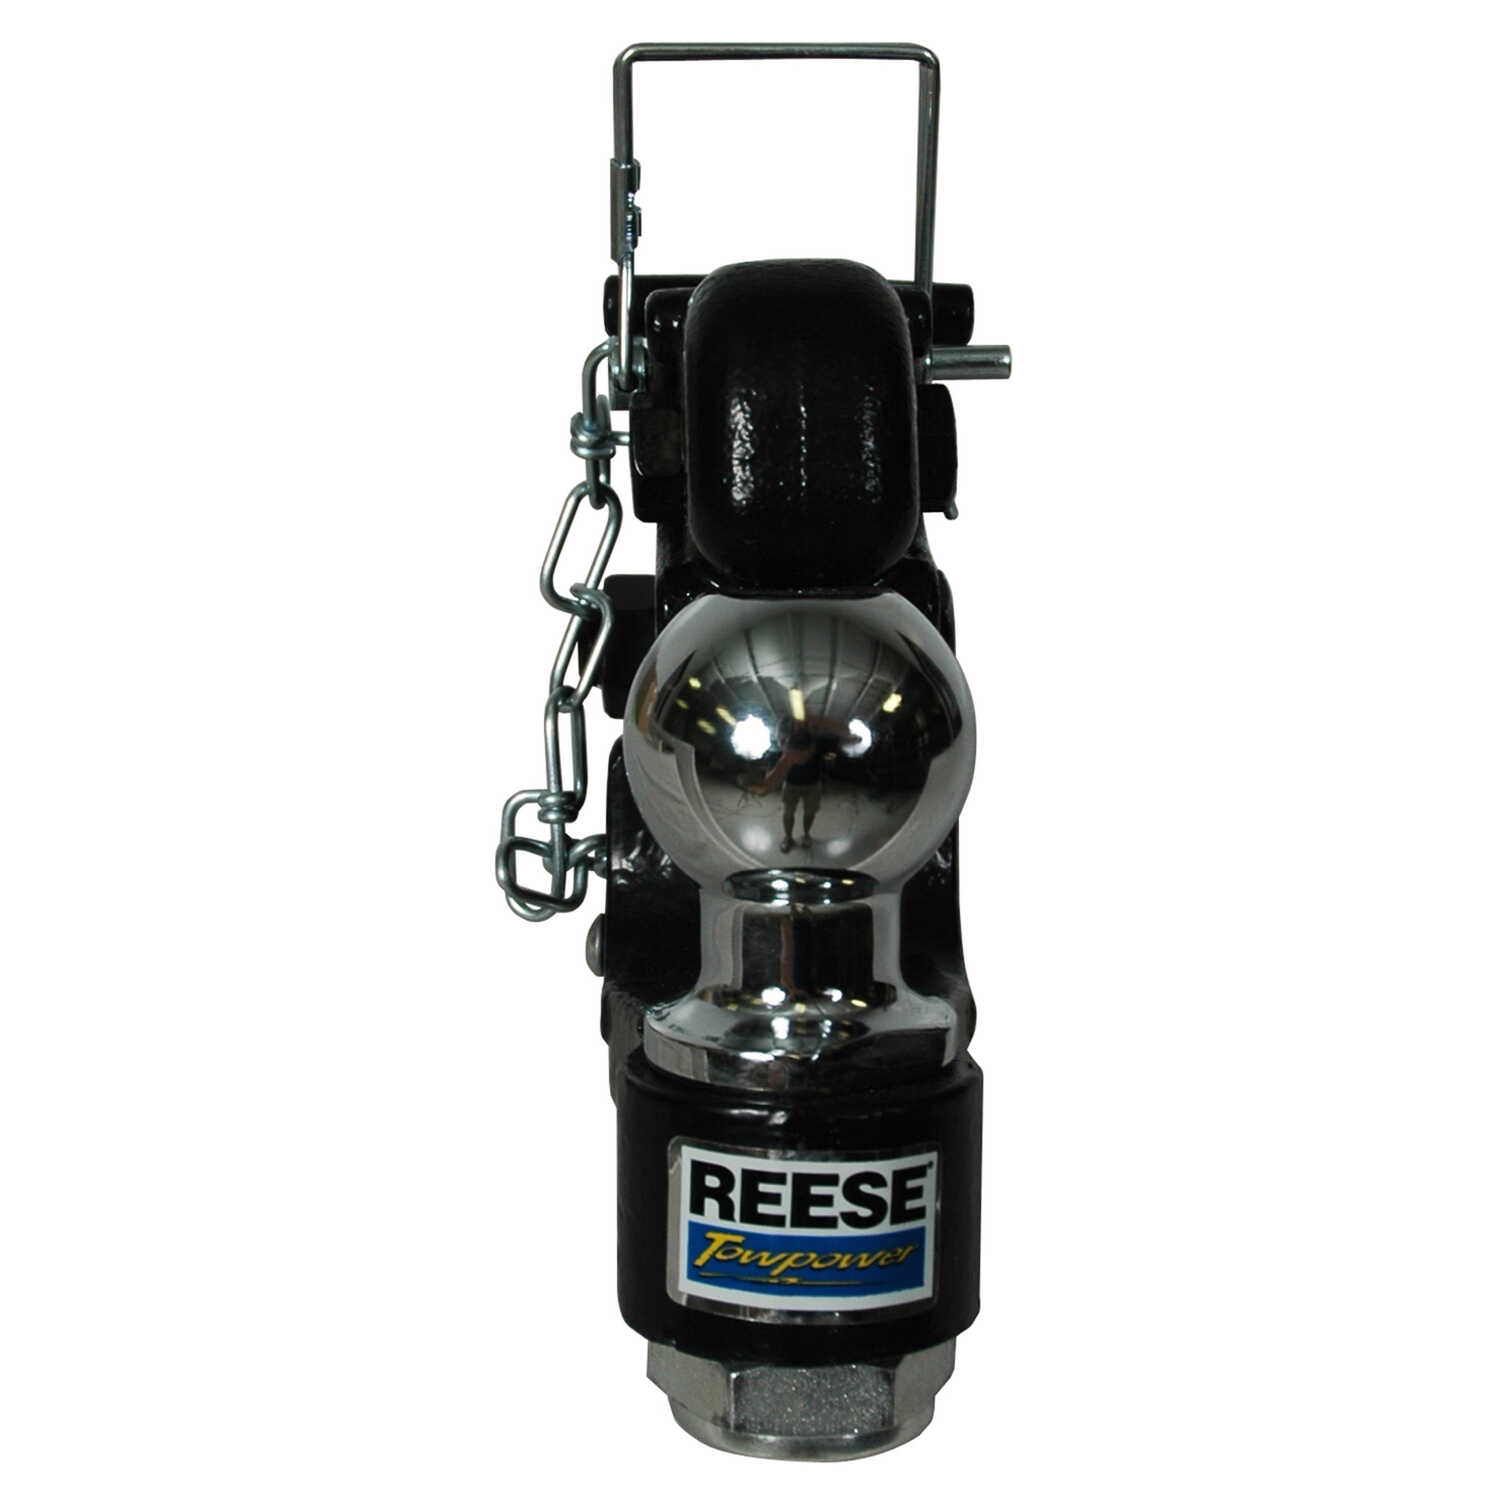 Reese  Towpower  Steel  2 in. Pintle Ball and Hook Combination